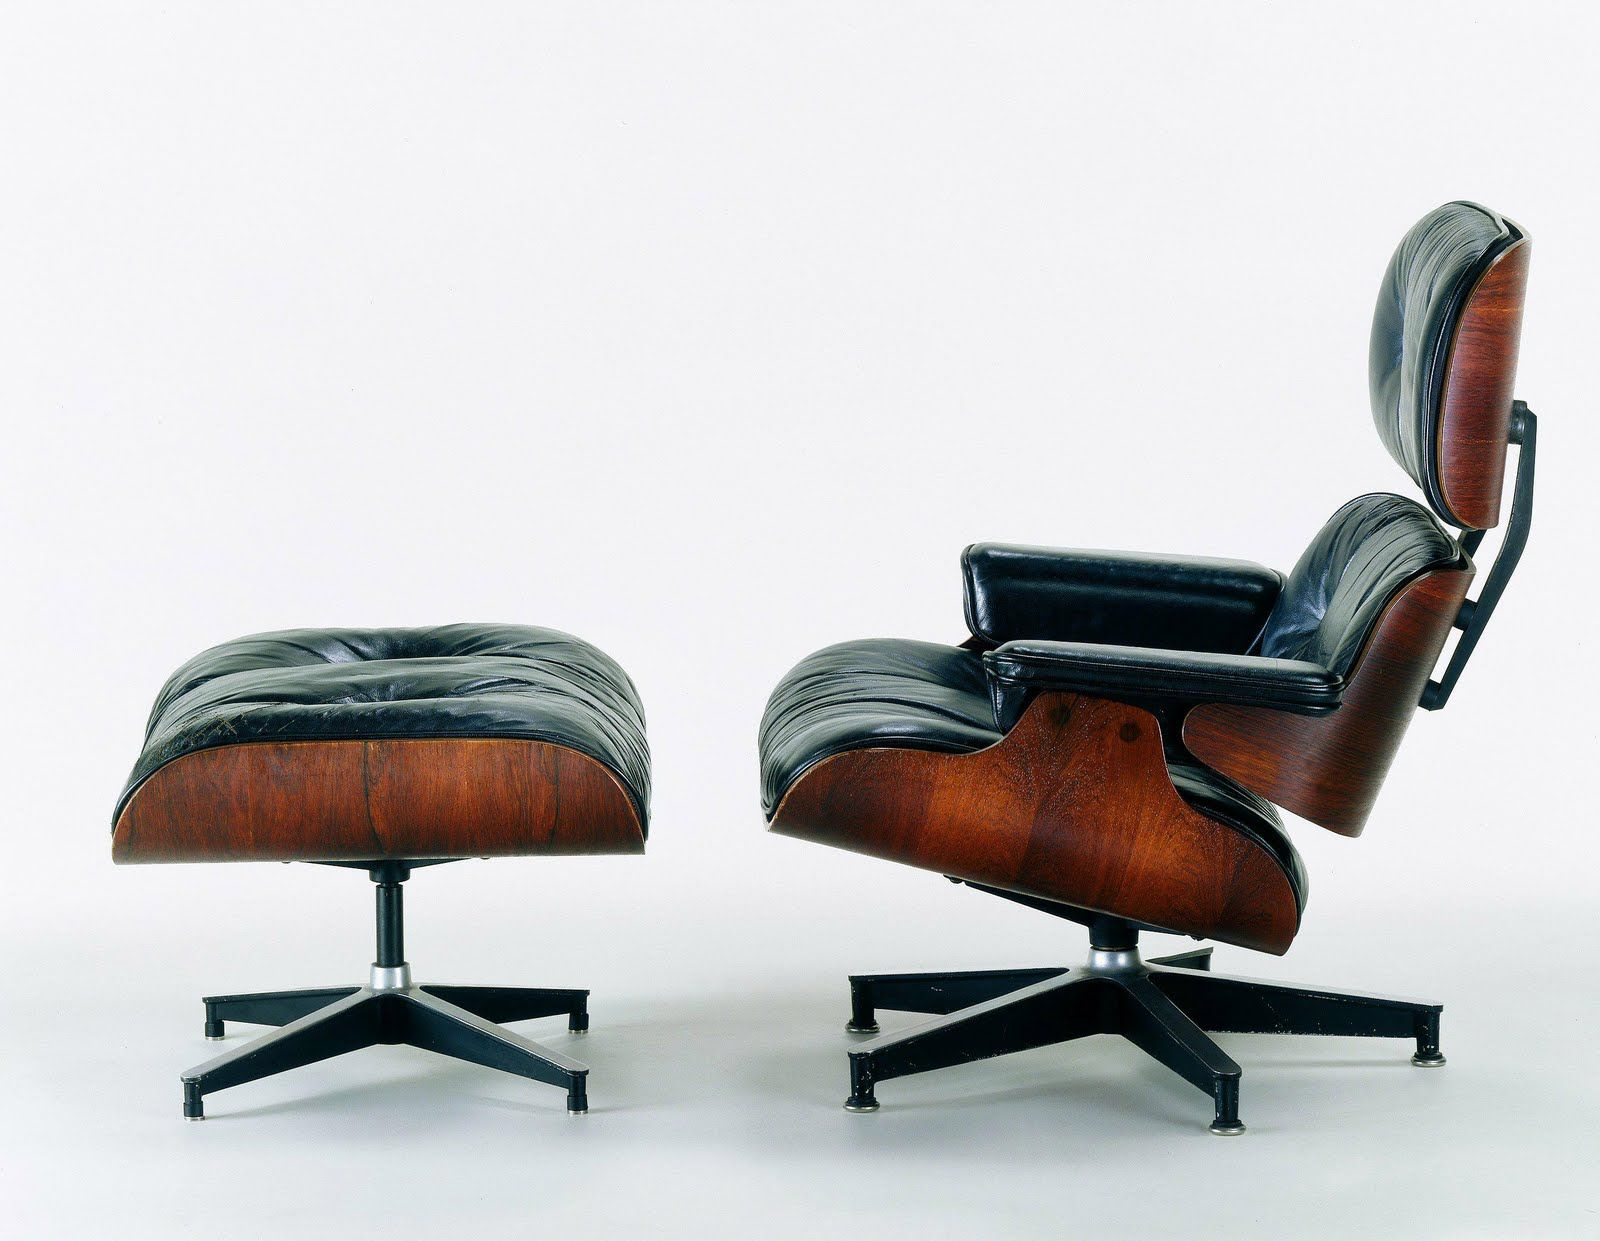 Ottomane Sessel Charles Eames Lounge Chair Ottoman Sessel For The Home